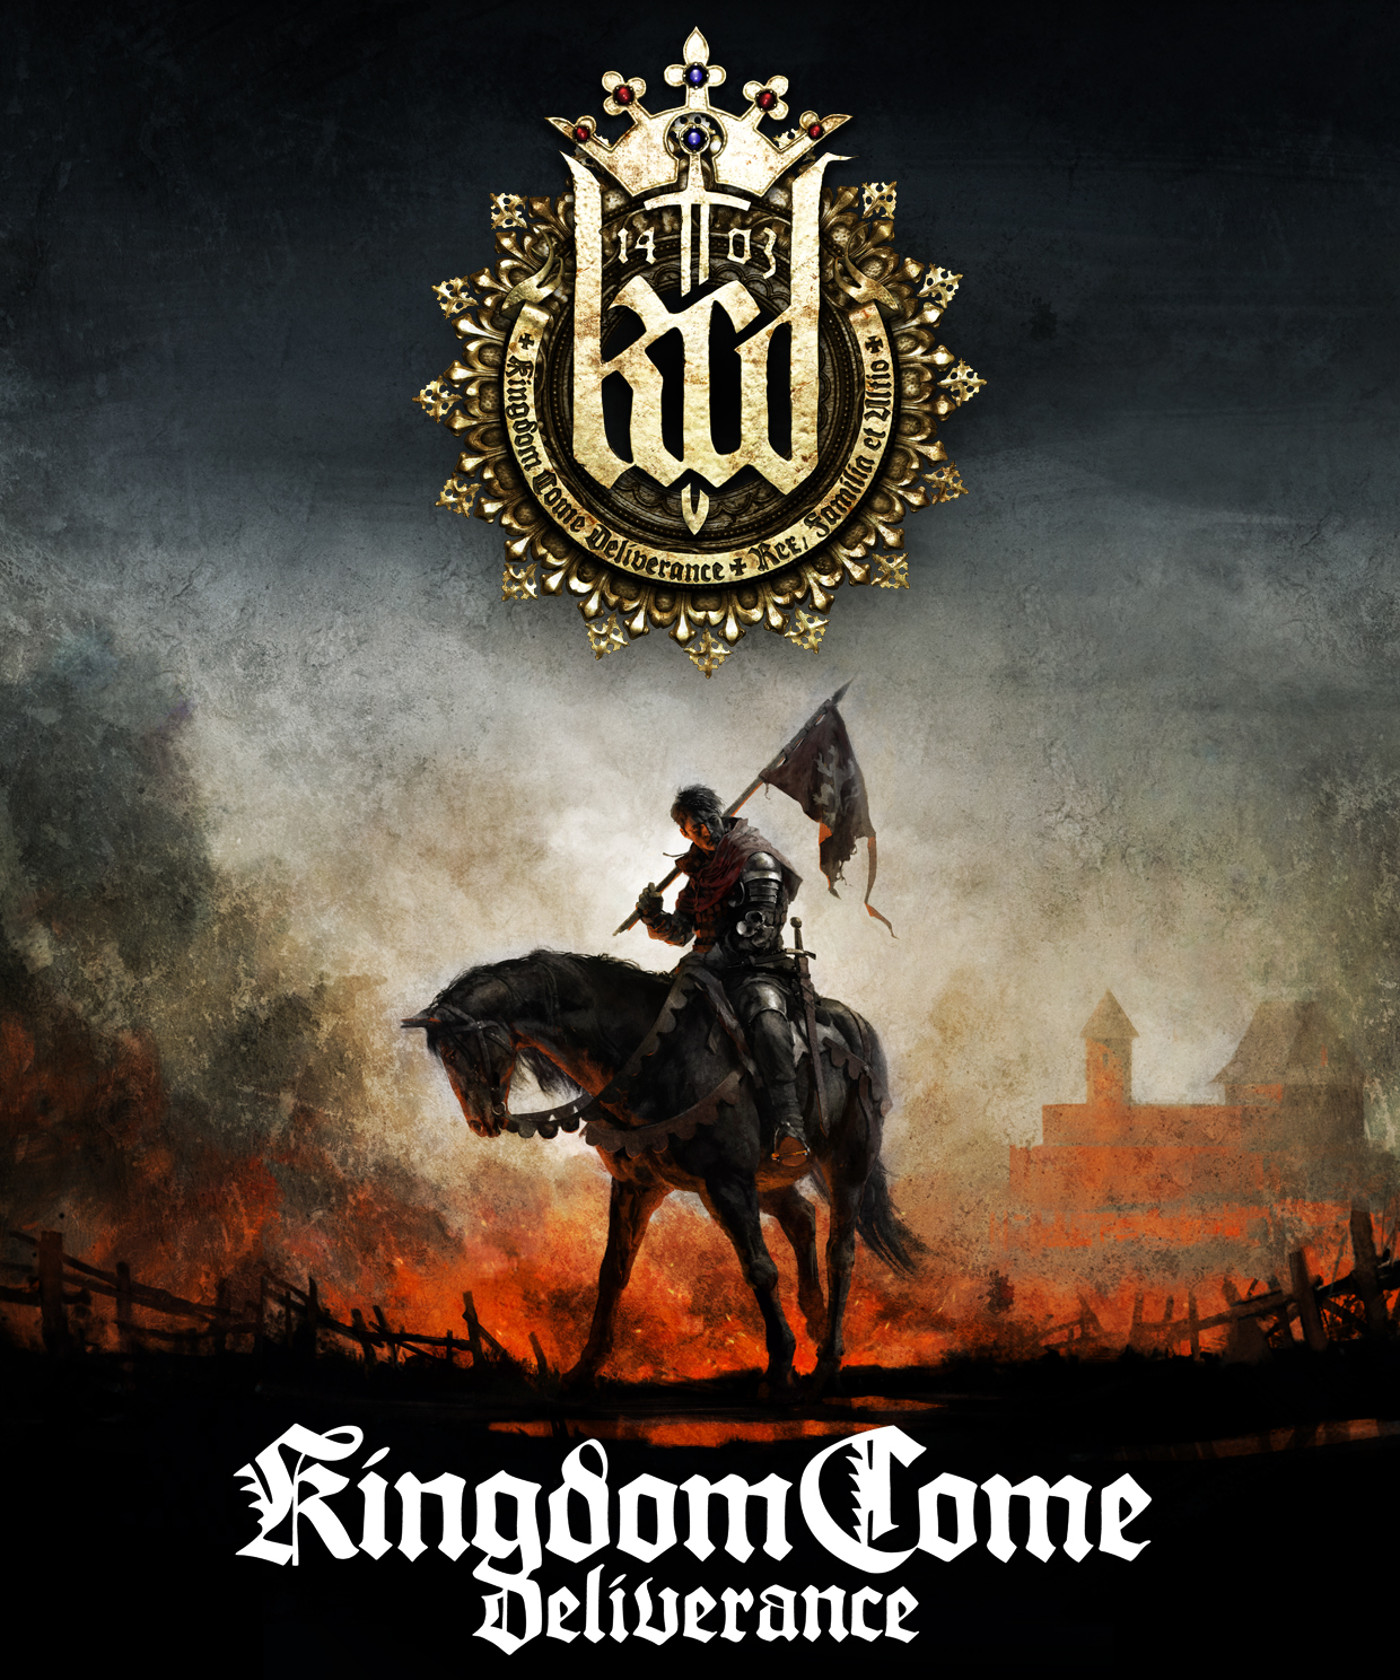 Kingdom Come: Deliverance (Скачать)